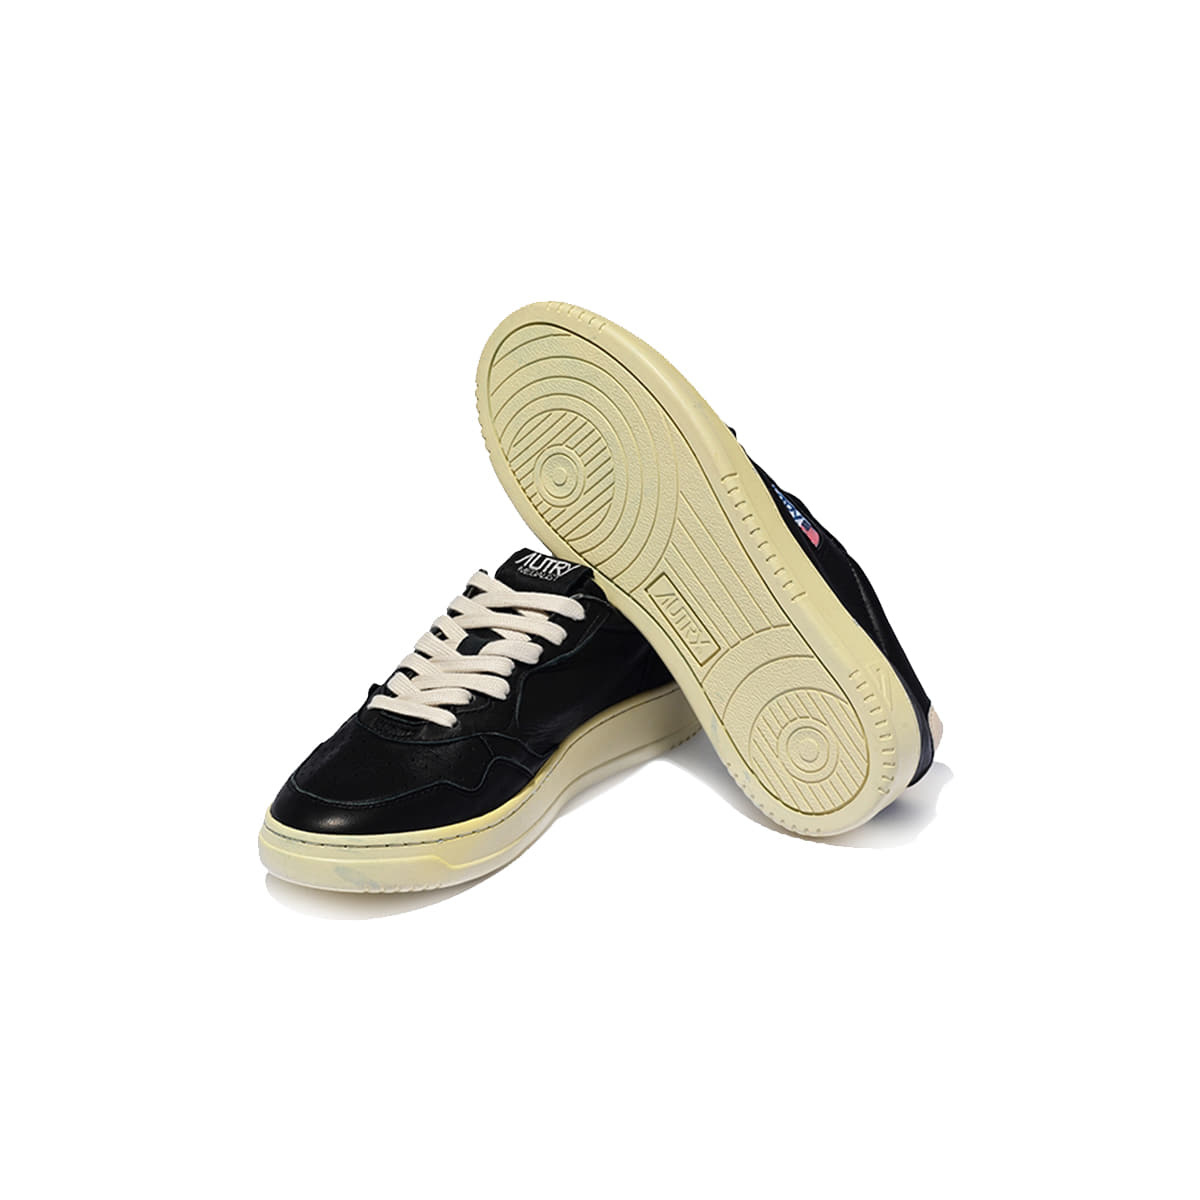 Medalist 01 Low Goat Black Leather Women-2